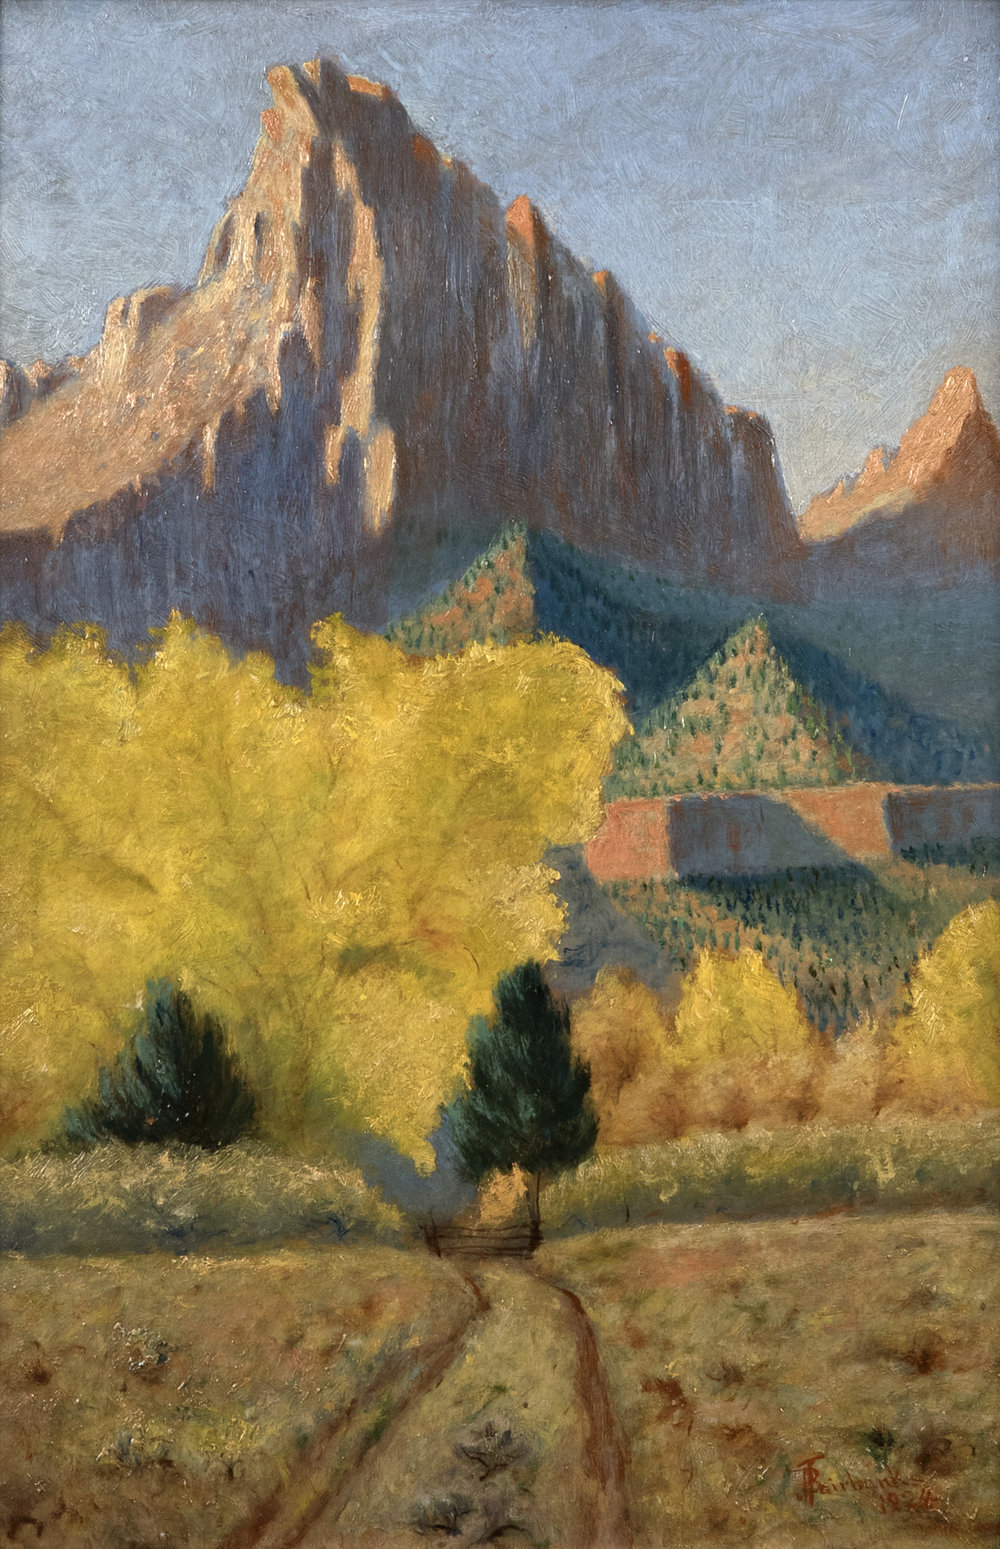 Zions (1924) by J.B. Fairbanks. 24 x 16 in. Oil on Panel